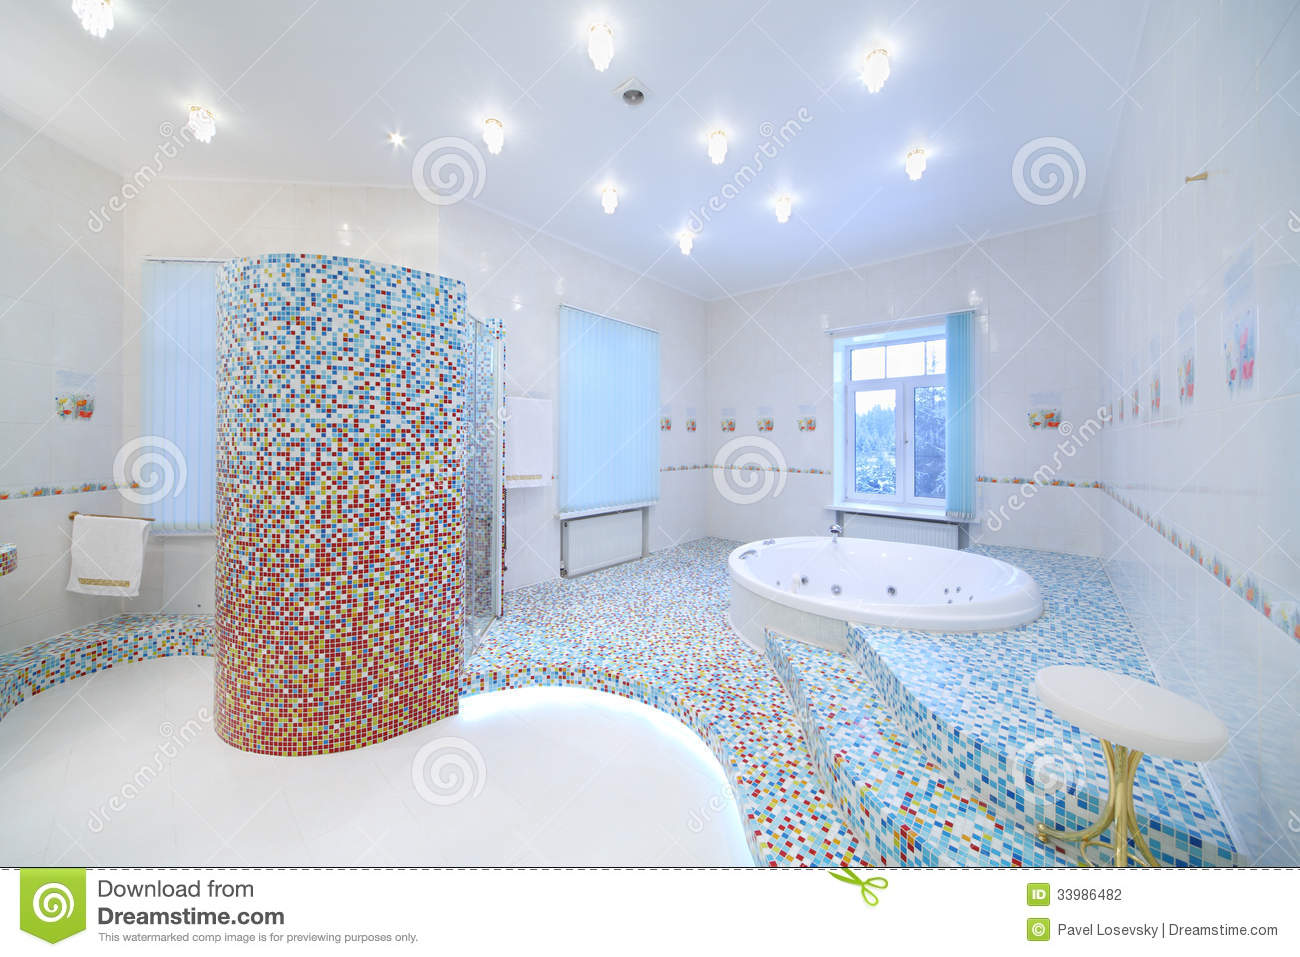 Light And Clean Bathroom With Jacuzzi And Shower Cabin Stock Photo ...